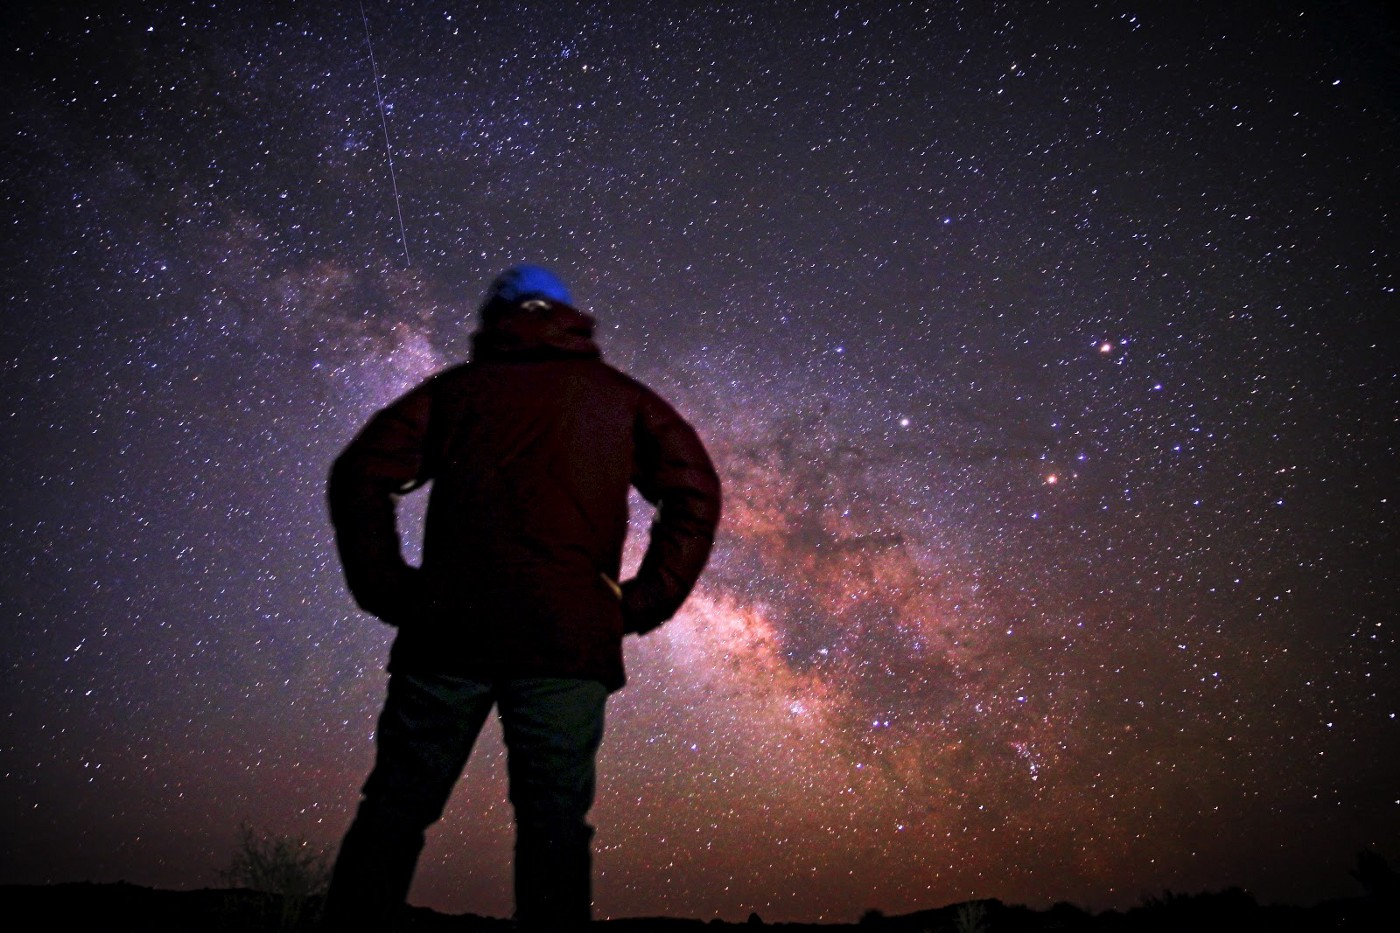 a man standing and staring at the night sky